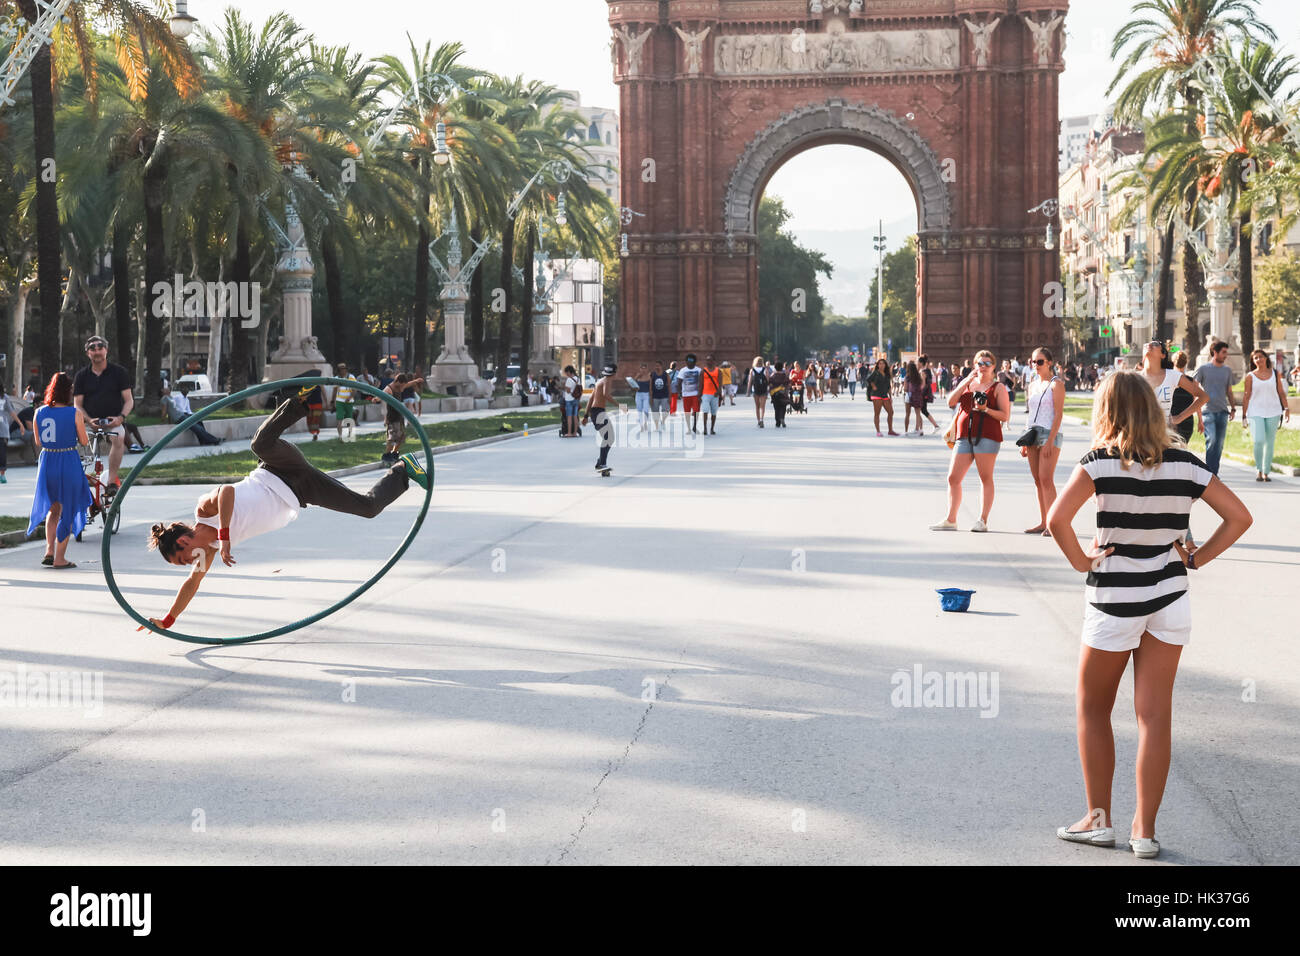 Barcelona, Spain - August 26, 2014: Acrobat with hoop makes performance in Ciutadella Park, Triumphal Arc on a background - Stock Image